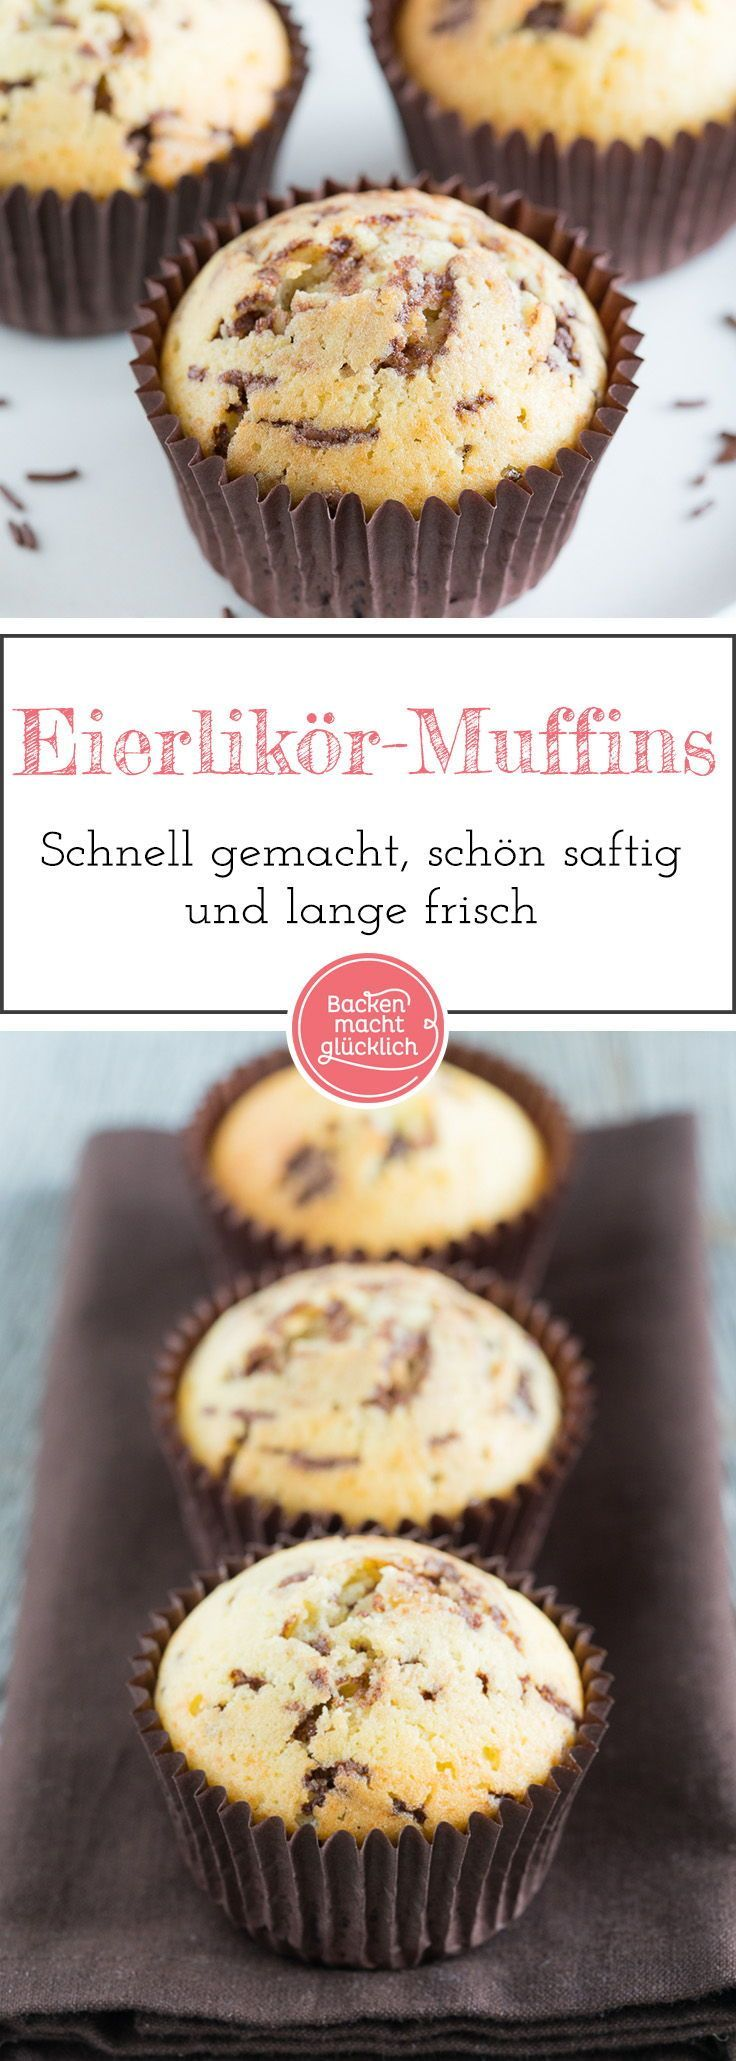 Photo of Eggnog muffins with chocolate